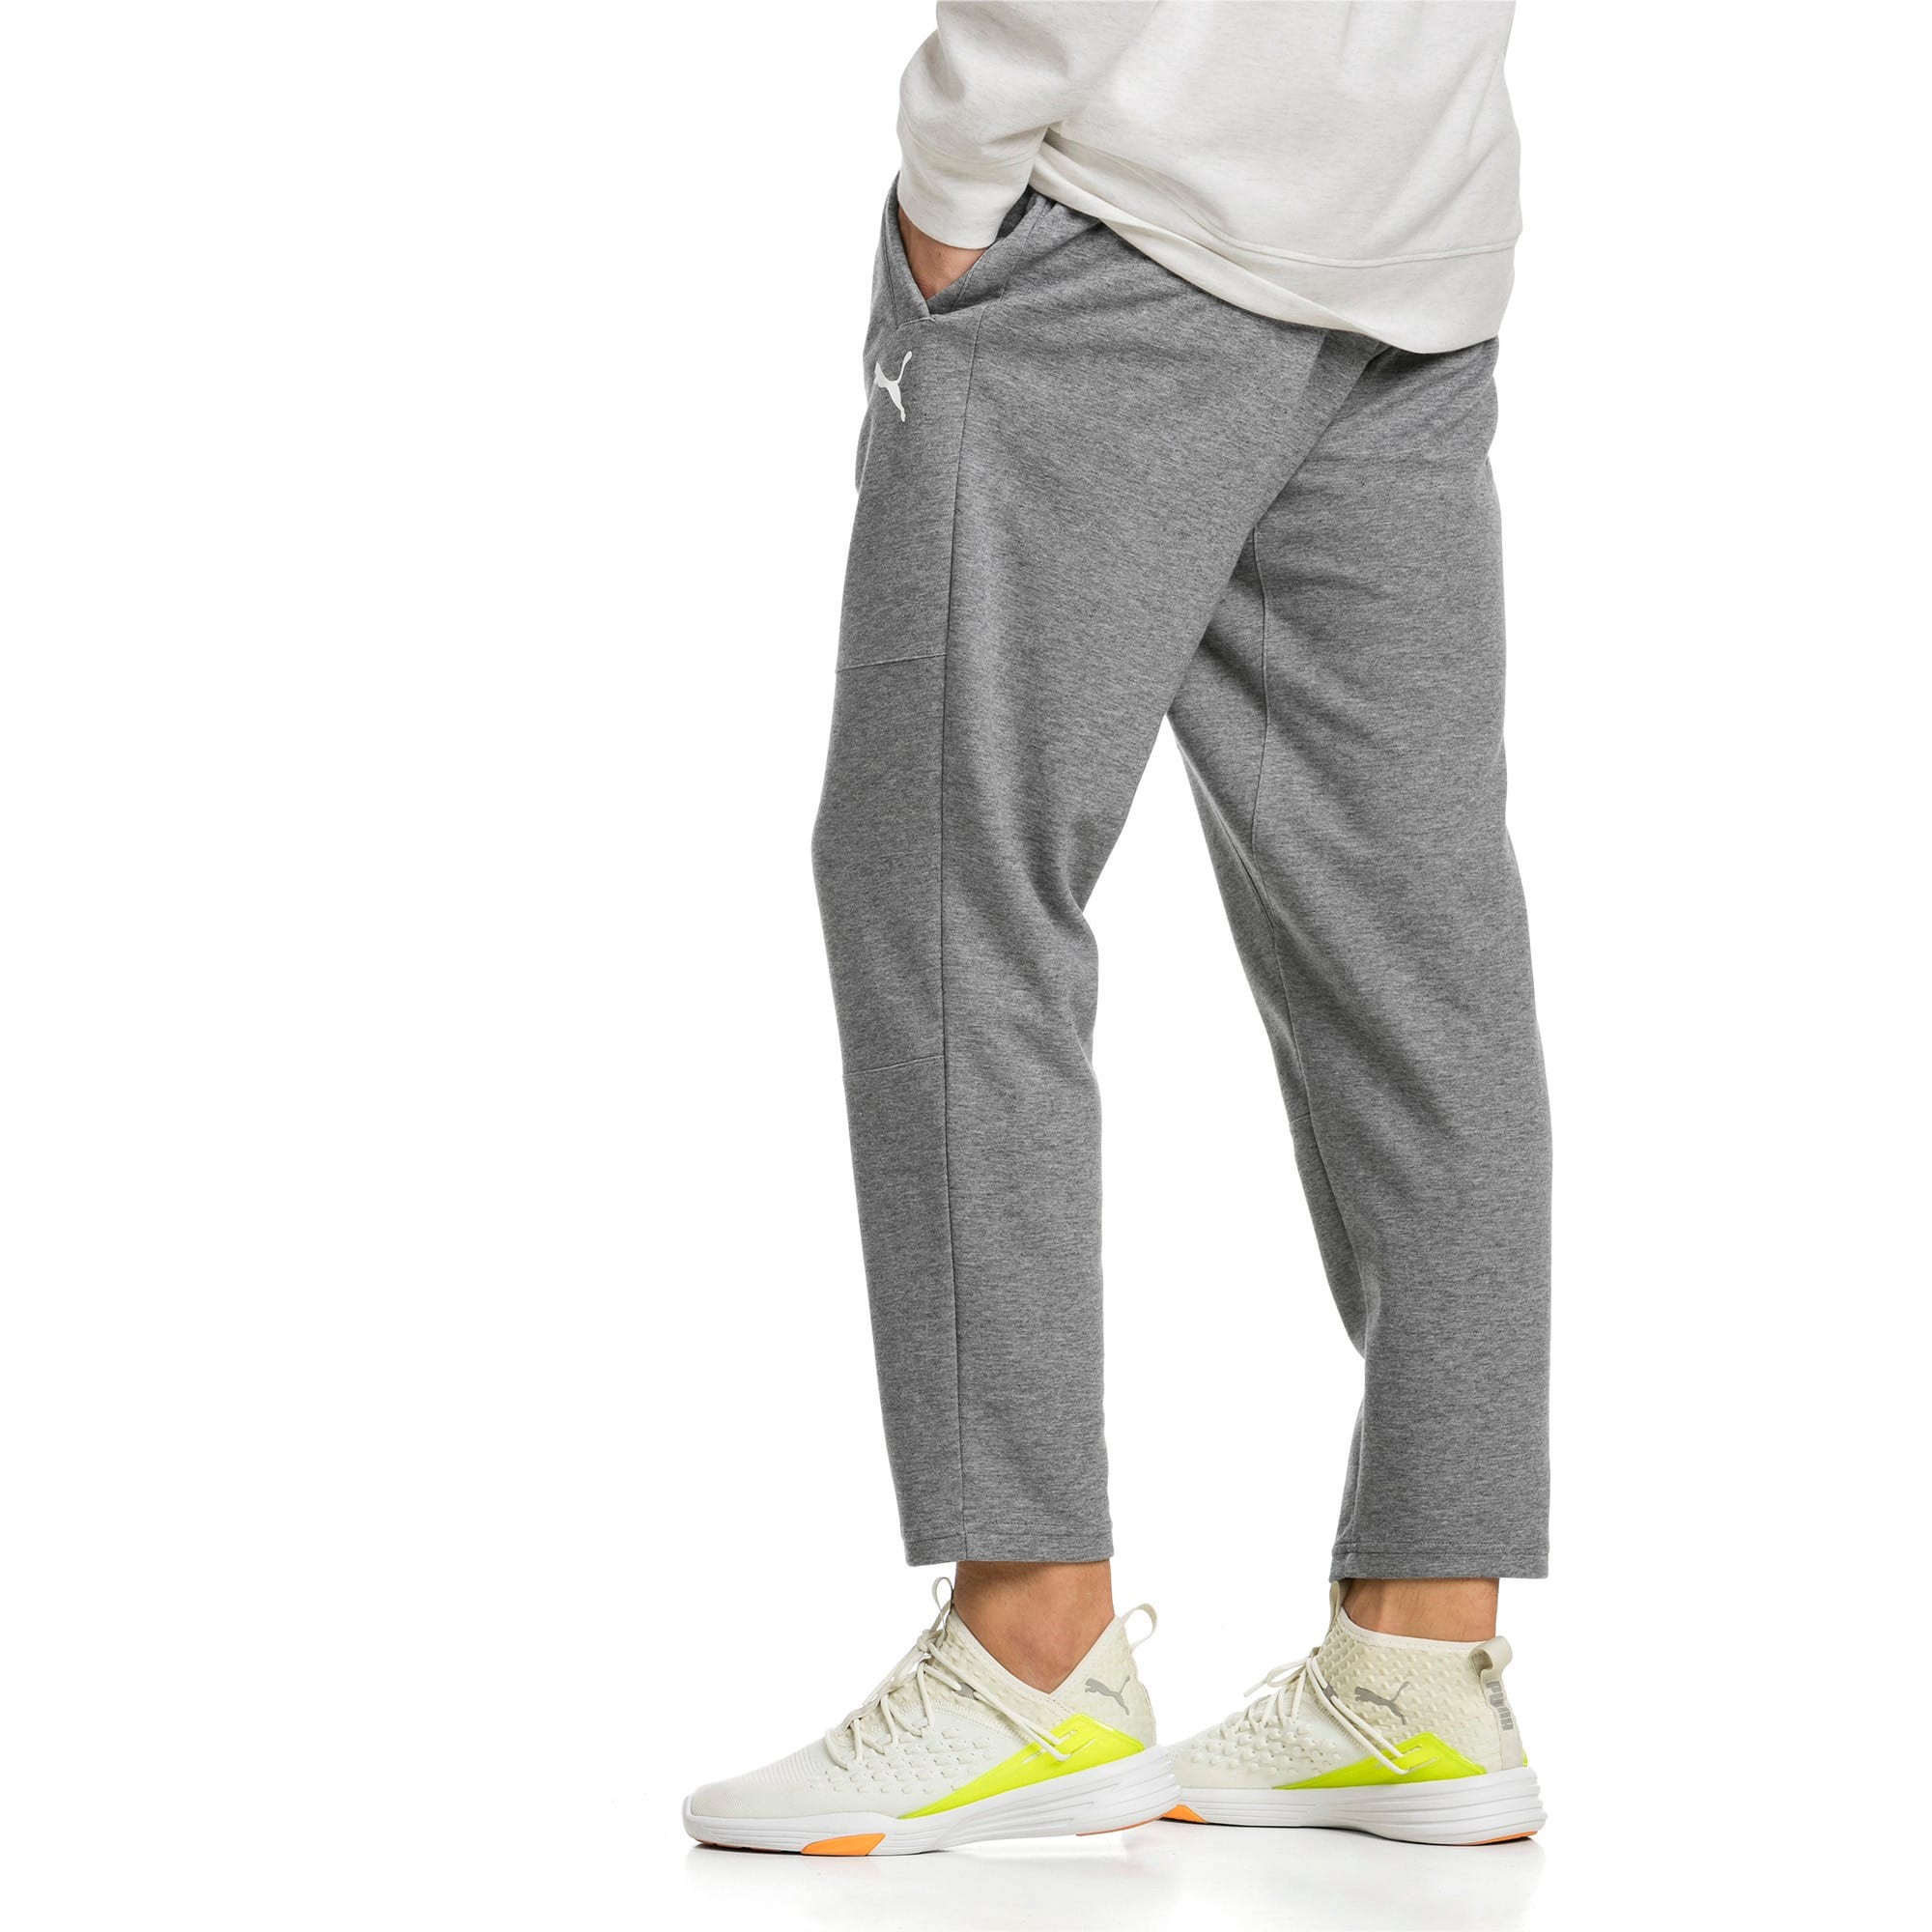 Thumbnail 2 of Knitted Men's Training Pants, Charcoal Gray Heather, medium-IND